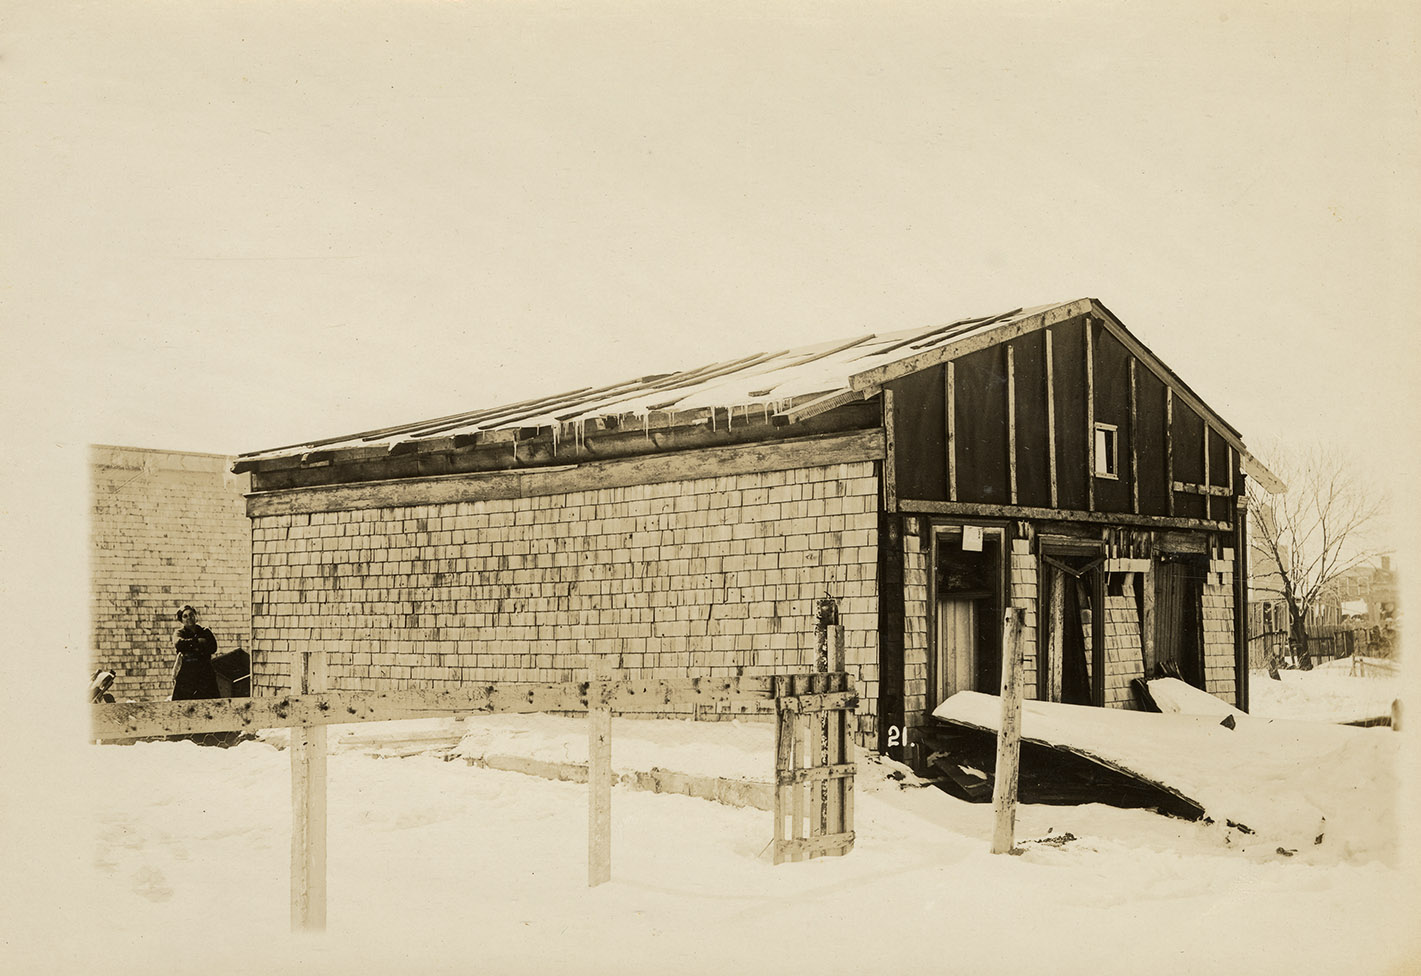 Unidentified Building, MacLaughlan album 1 number 21